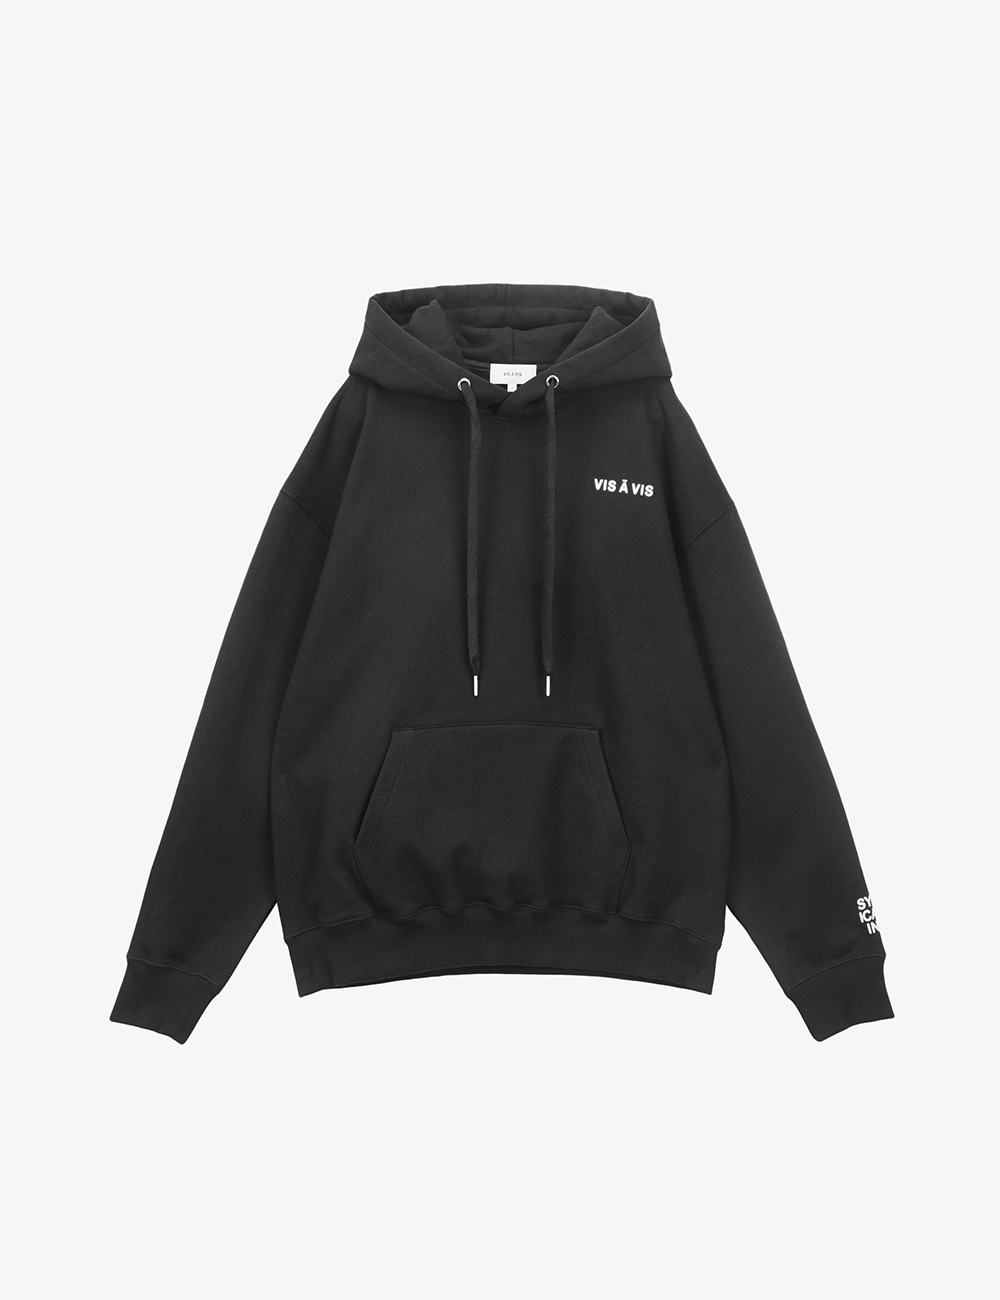 V LOGO UNISEX HOODED SWEATSHIRT (BLACK)